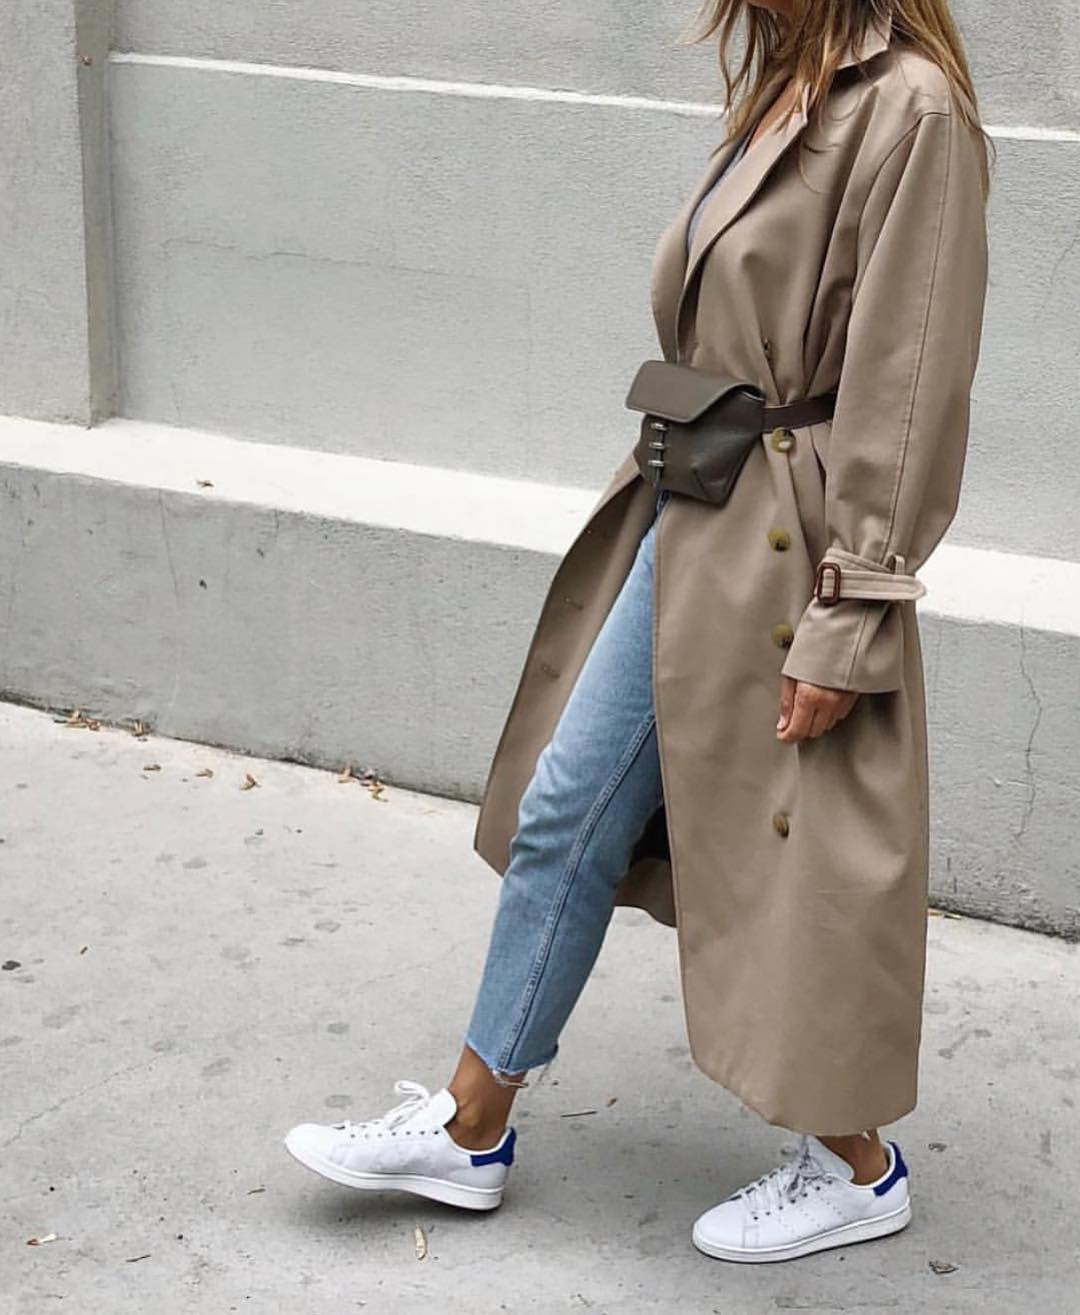 Cream-Grey Oversized Long Coat With Belted Bag, Jeans And White Kicks For Fall 2019